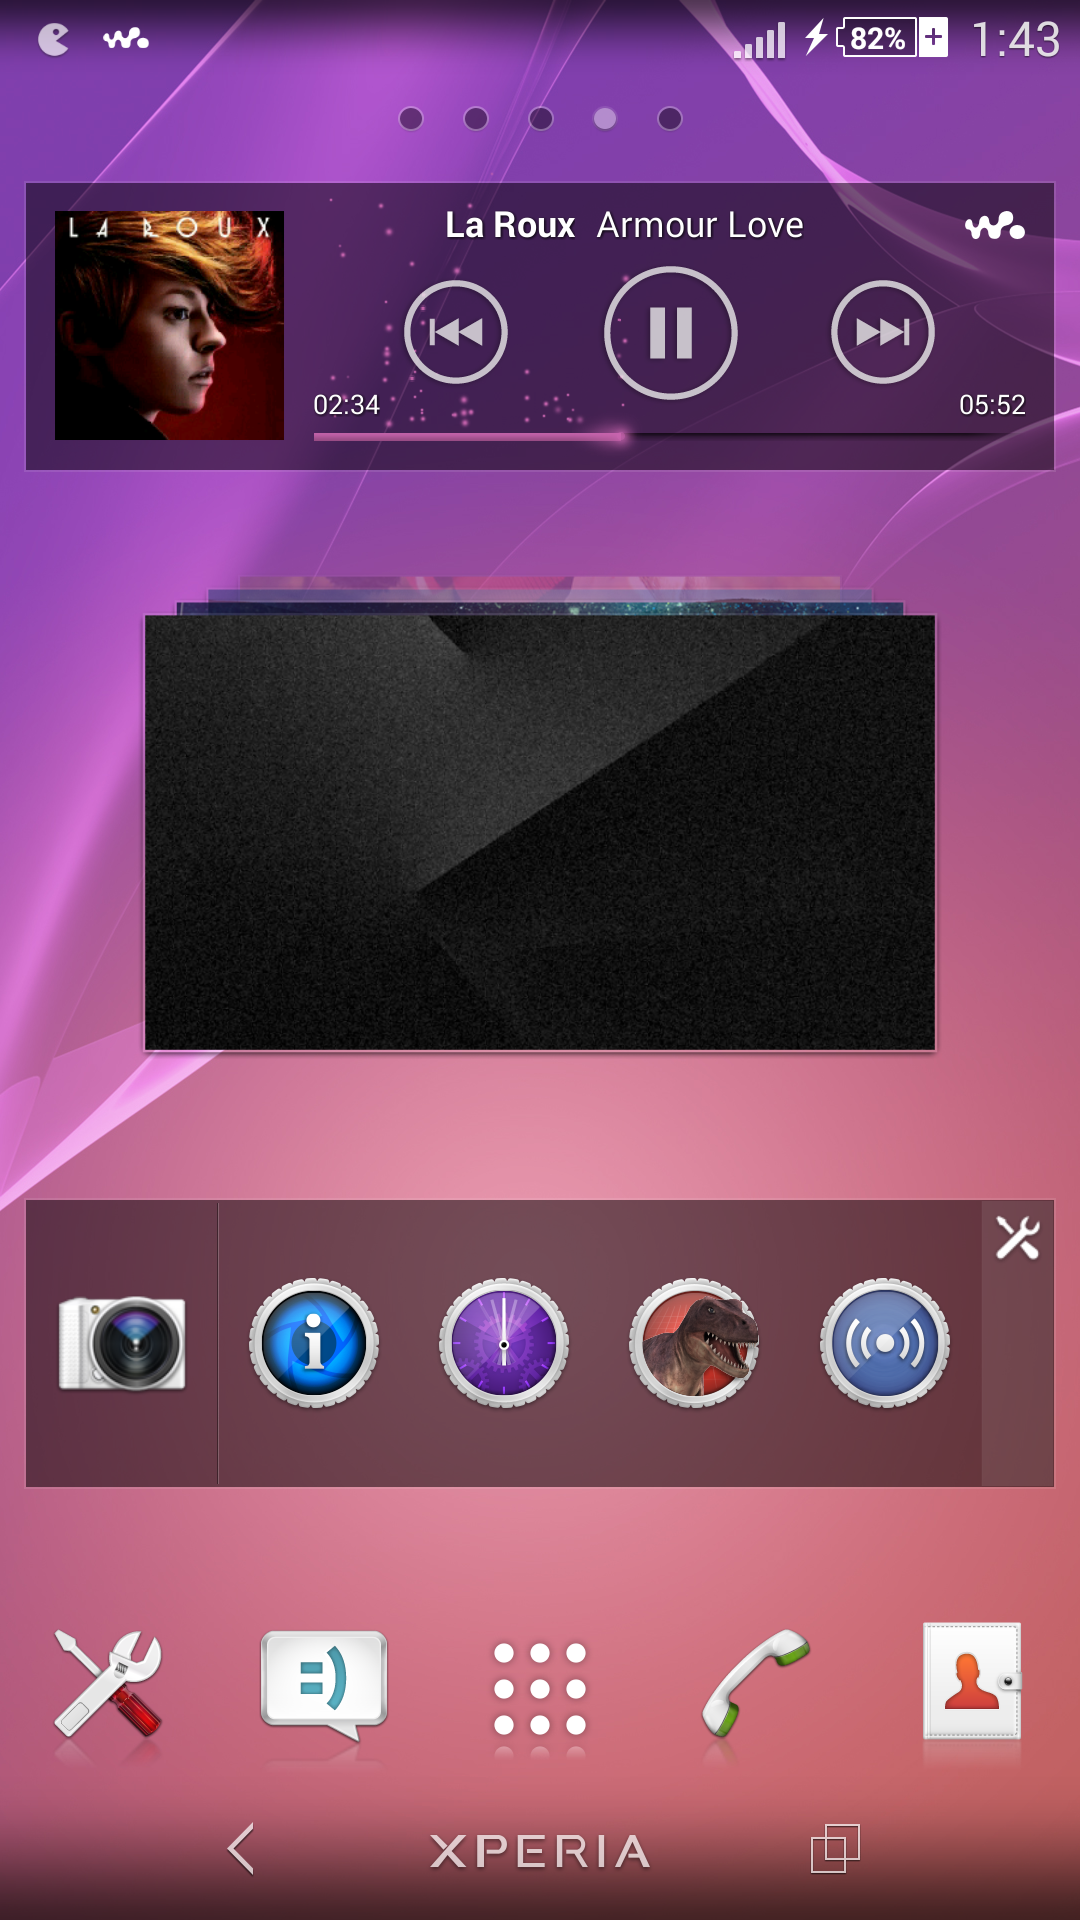 Xperia Z2 Walkman Music Widget